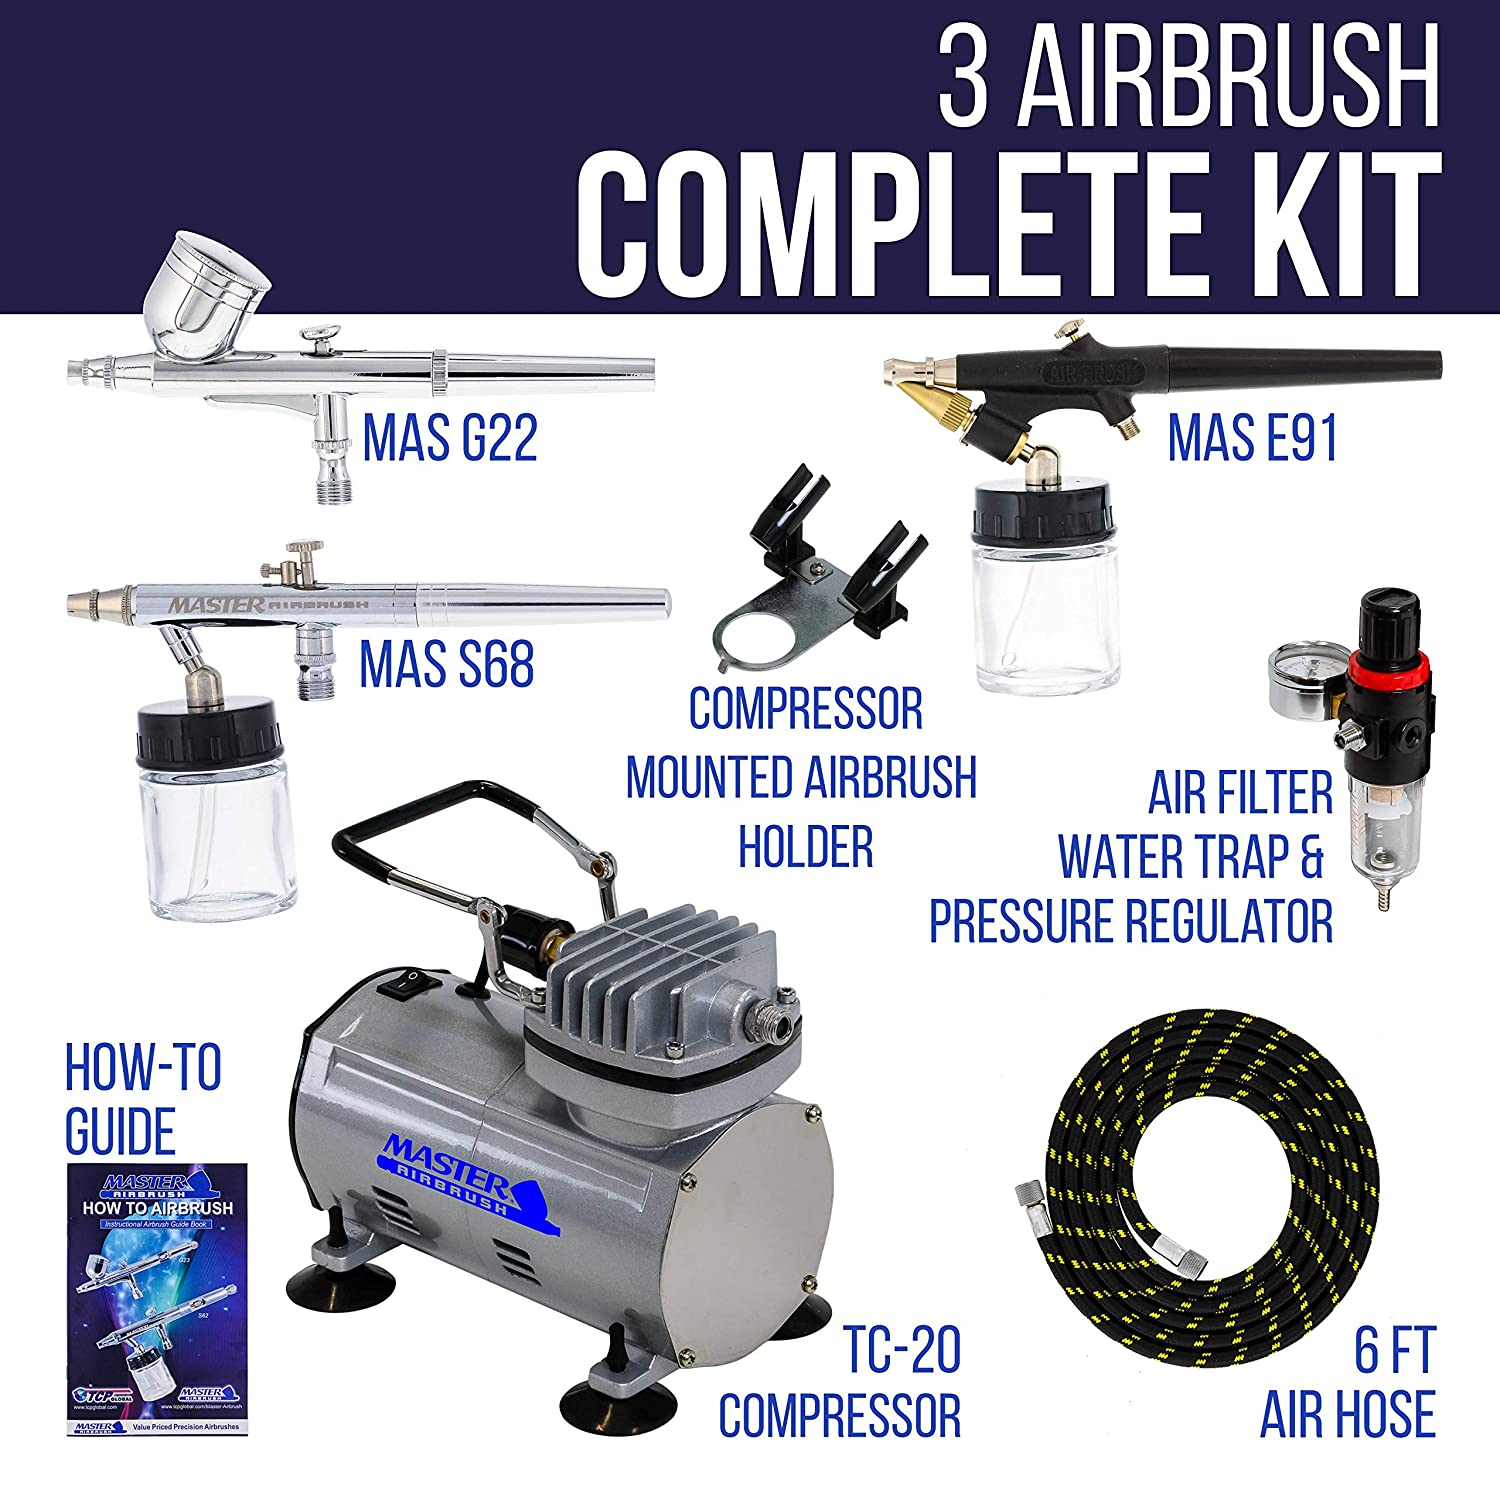 Master Airbrush 3 Airbrush Professional Multi-Purpose Airbrushing System  Kit - G22, S68, E91 Gravity & Siphon Feed Airbrushes, Hose, Air Compressor,